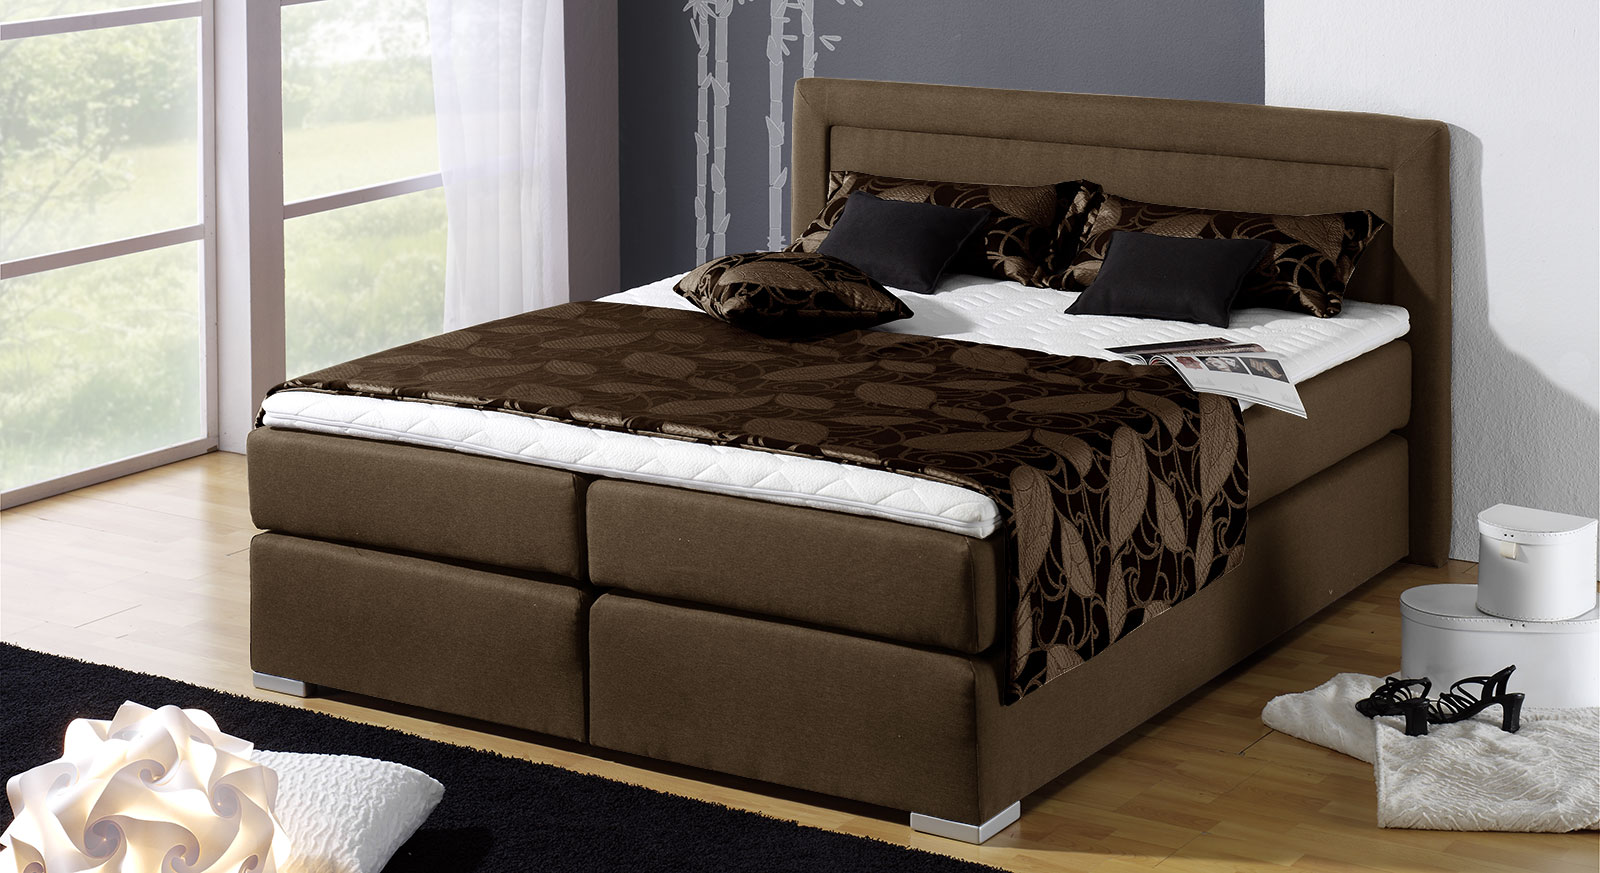 boxspringbett mit kaltschaummatratze. Black Bedroom Furniture Sets. Home Design Ideas